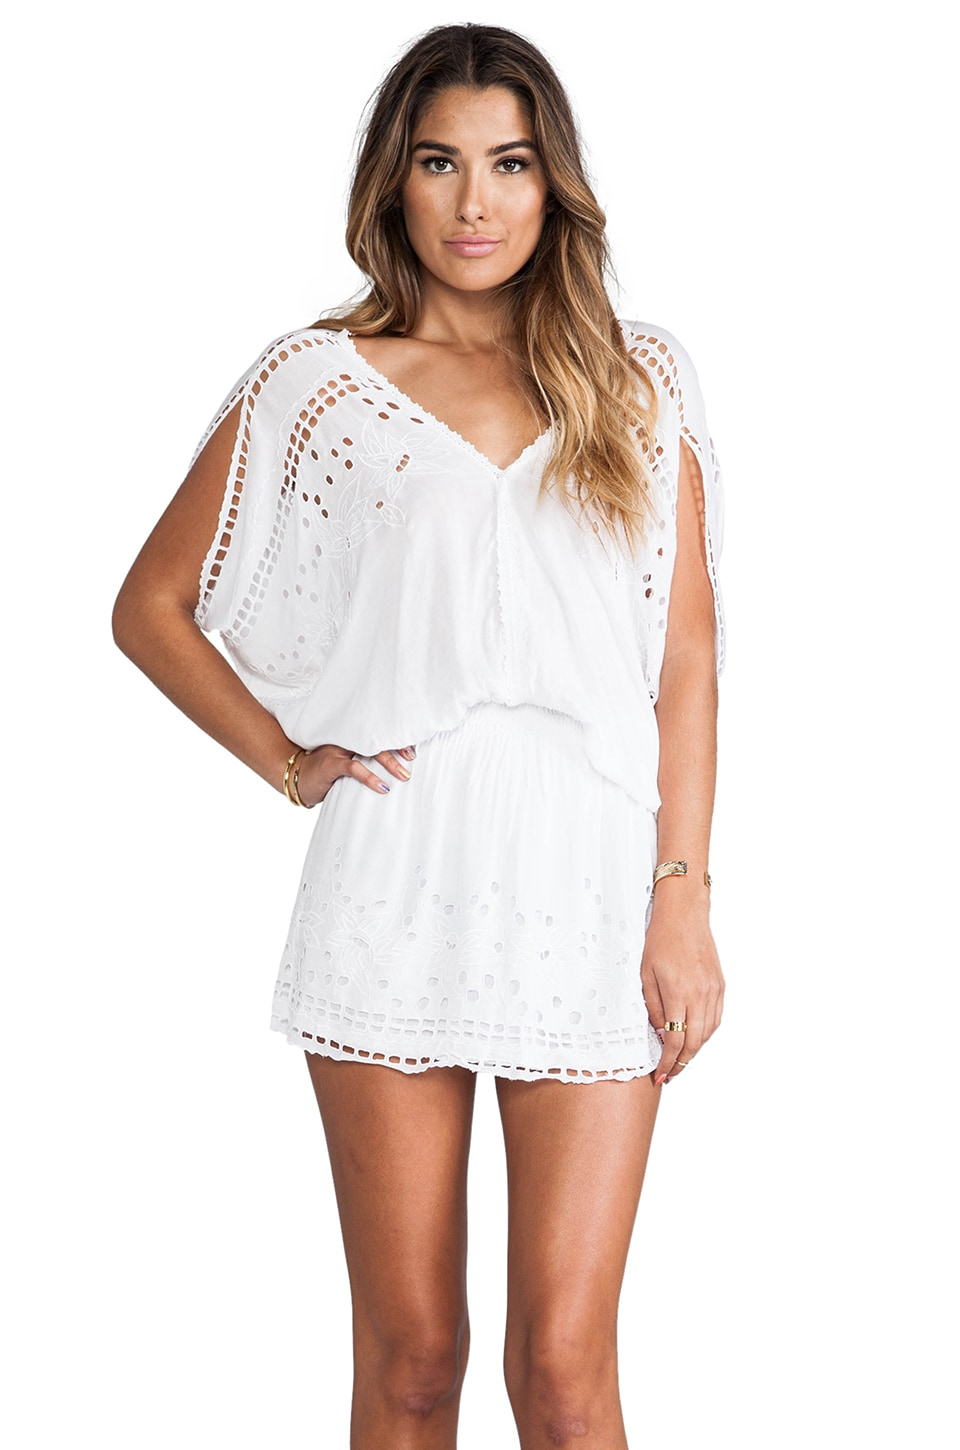 Tiare Hawaii Krawang Mini Dress in White